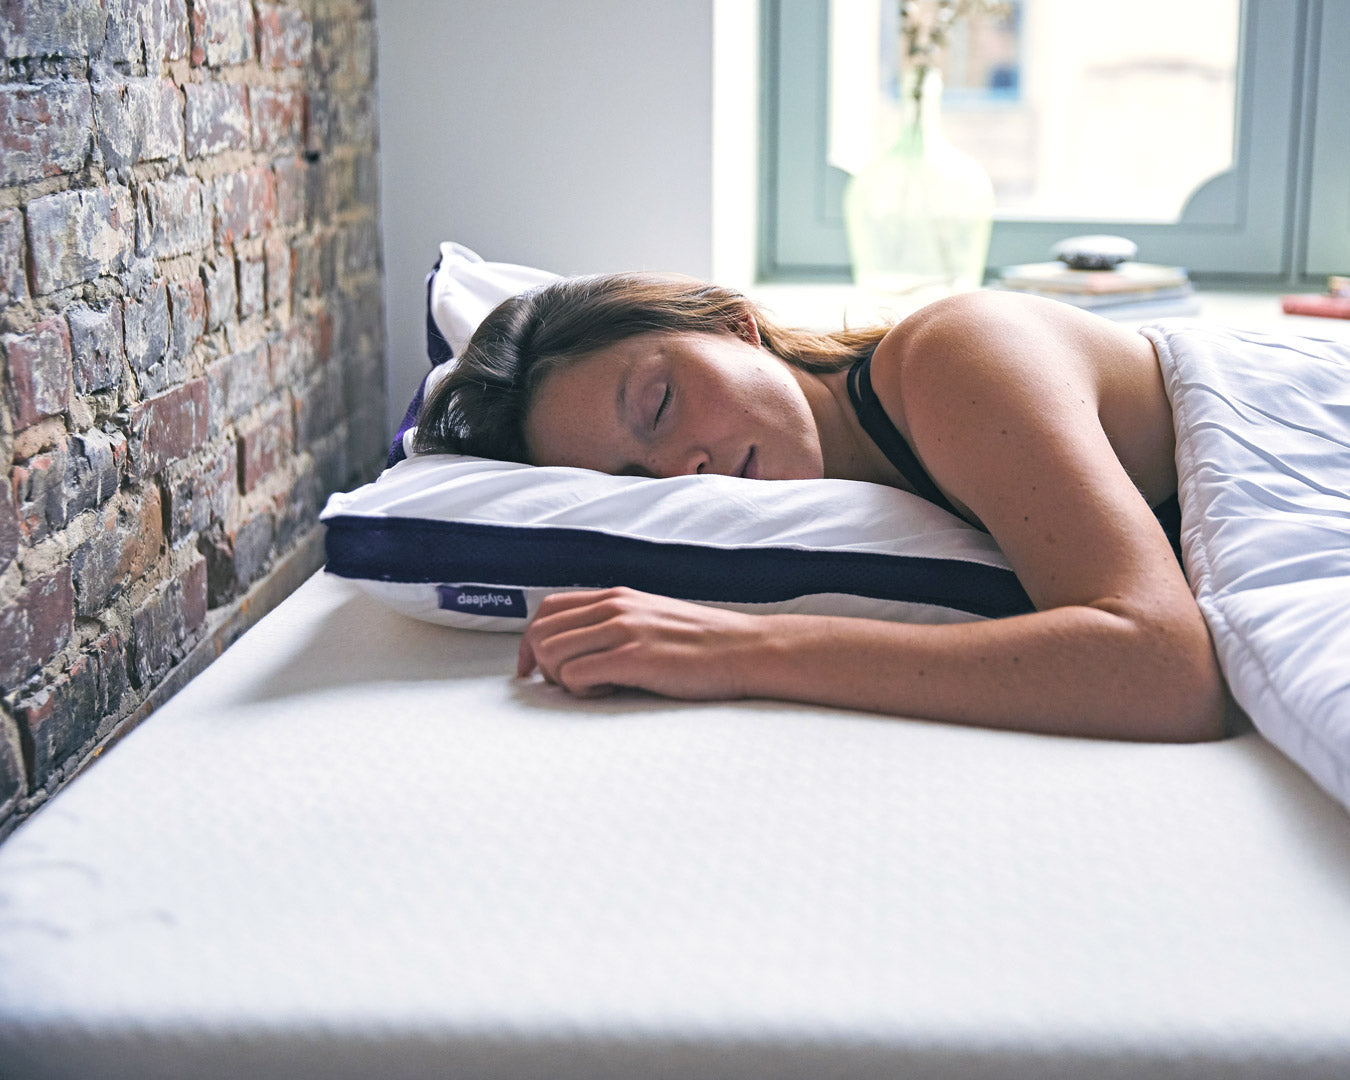 A woman is sleeping on her stomach with a thin Polysleep pillow